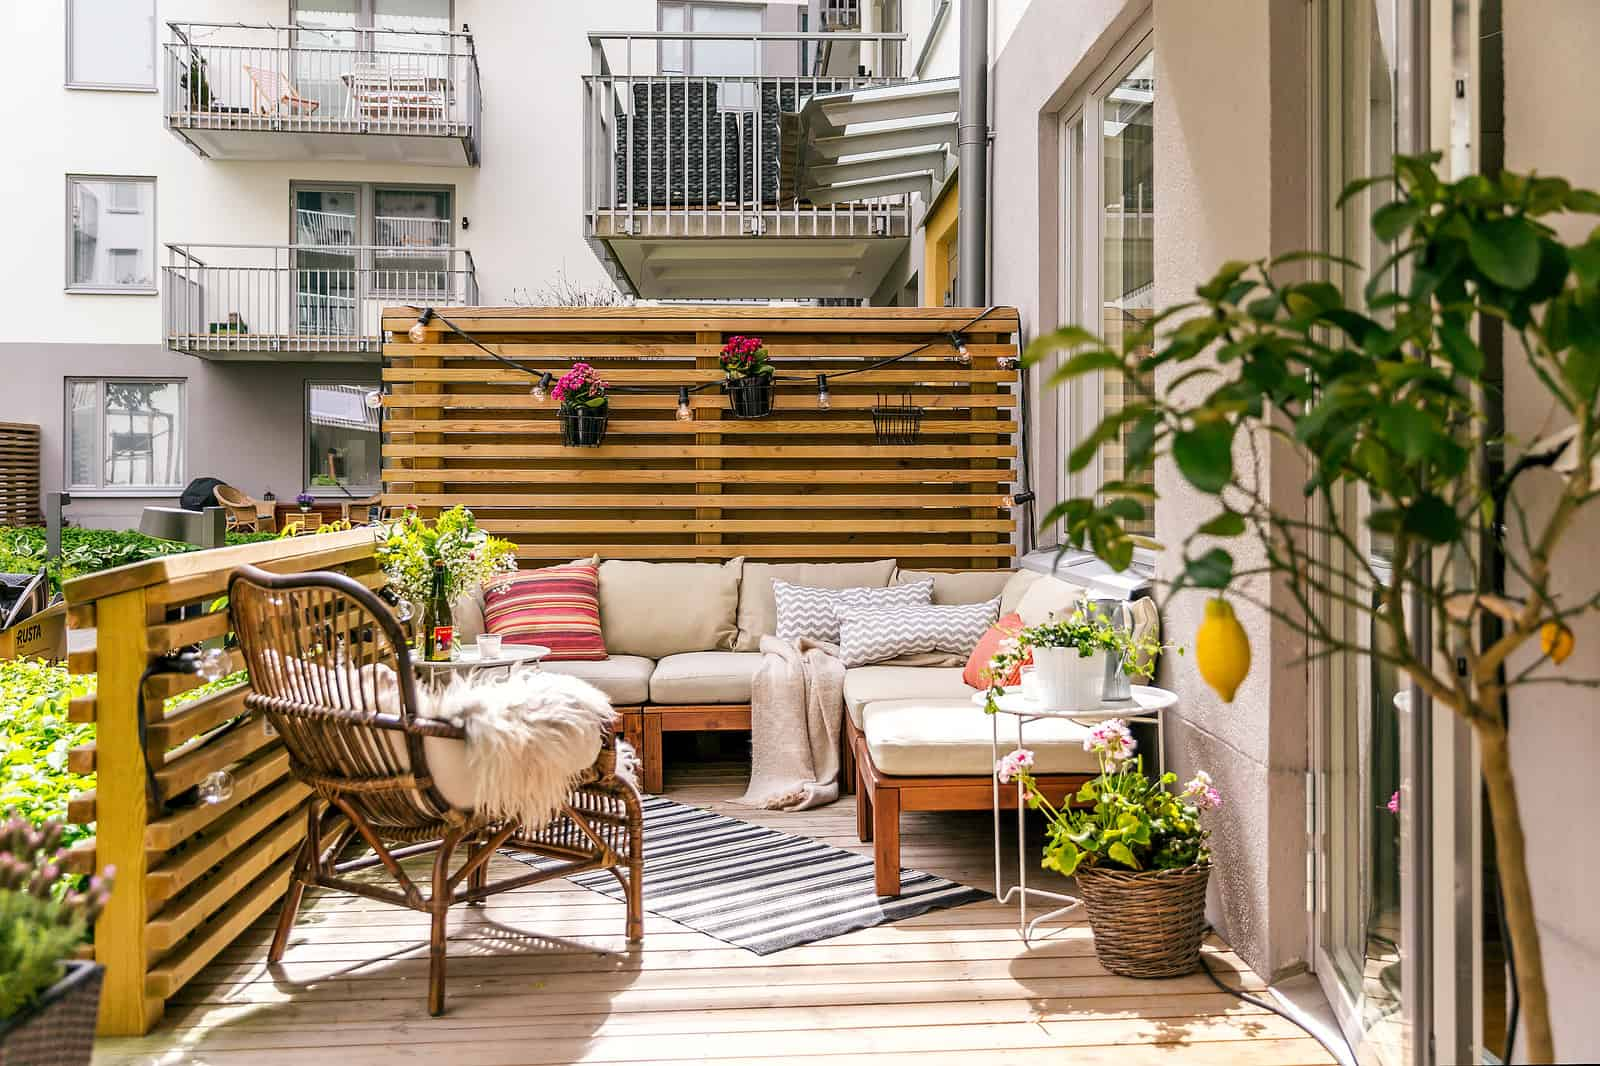 privacy screen for deck railing ideas